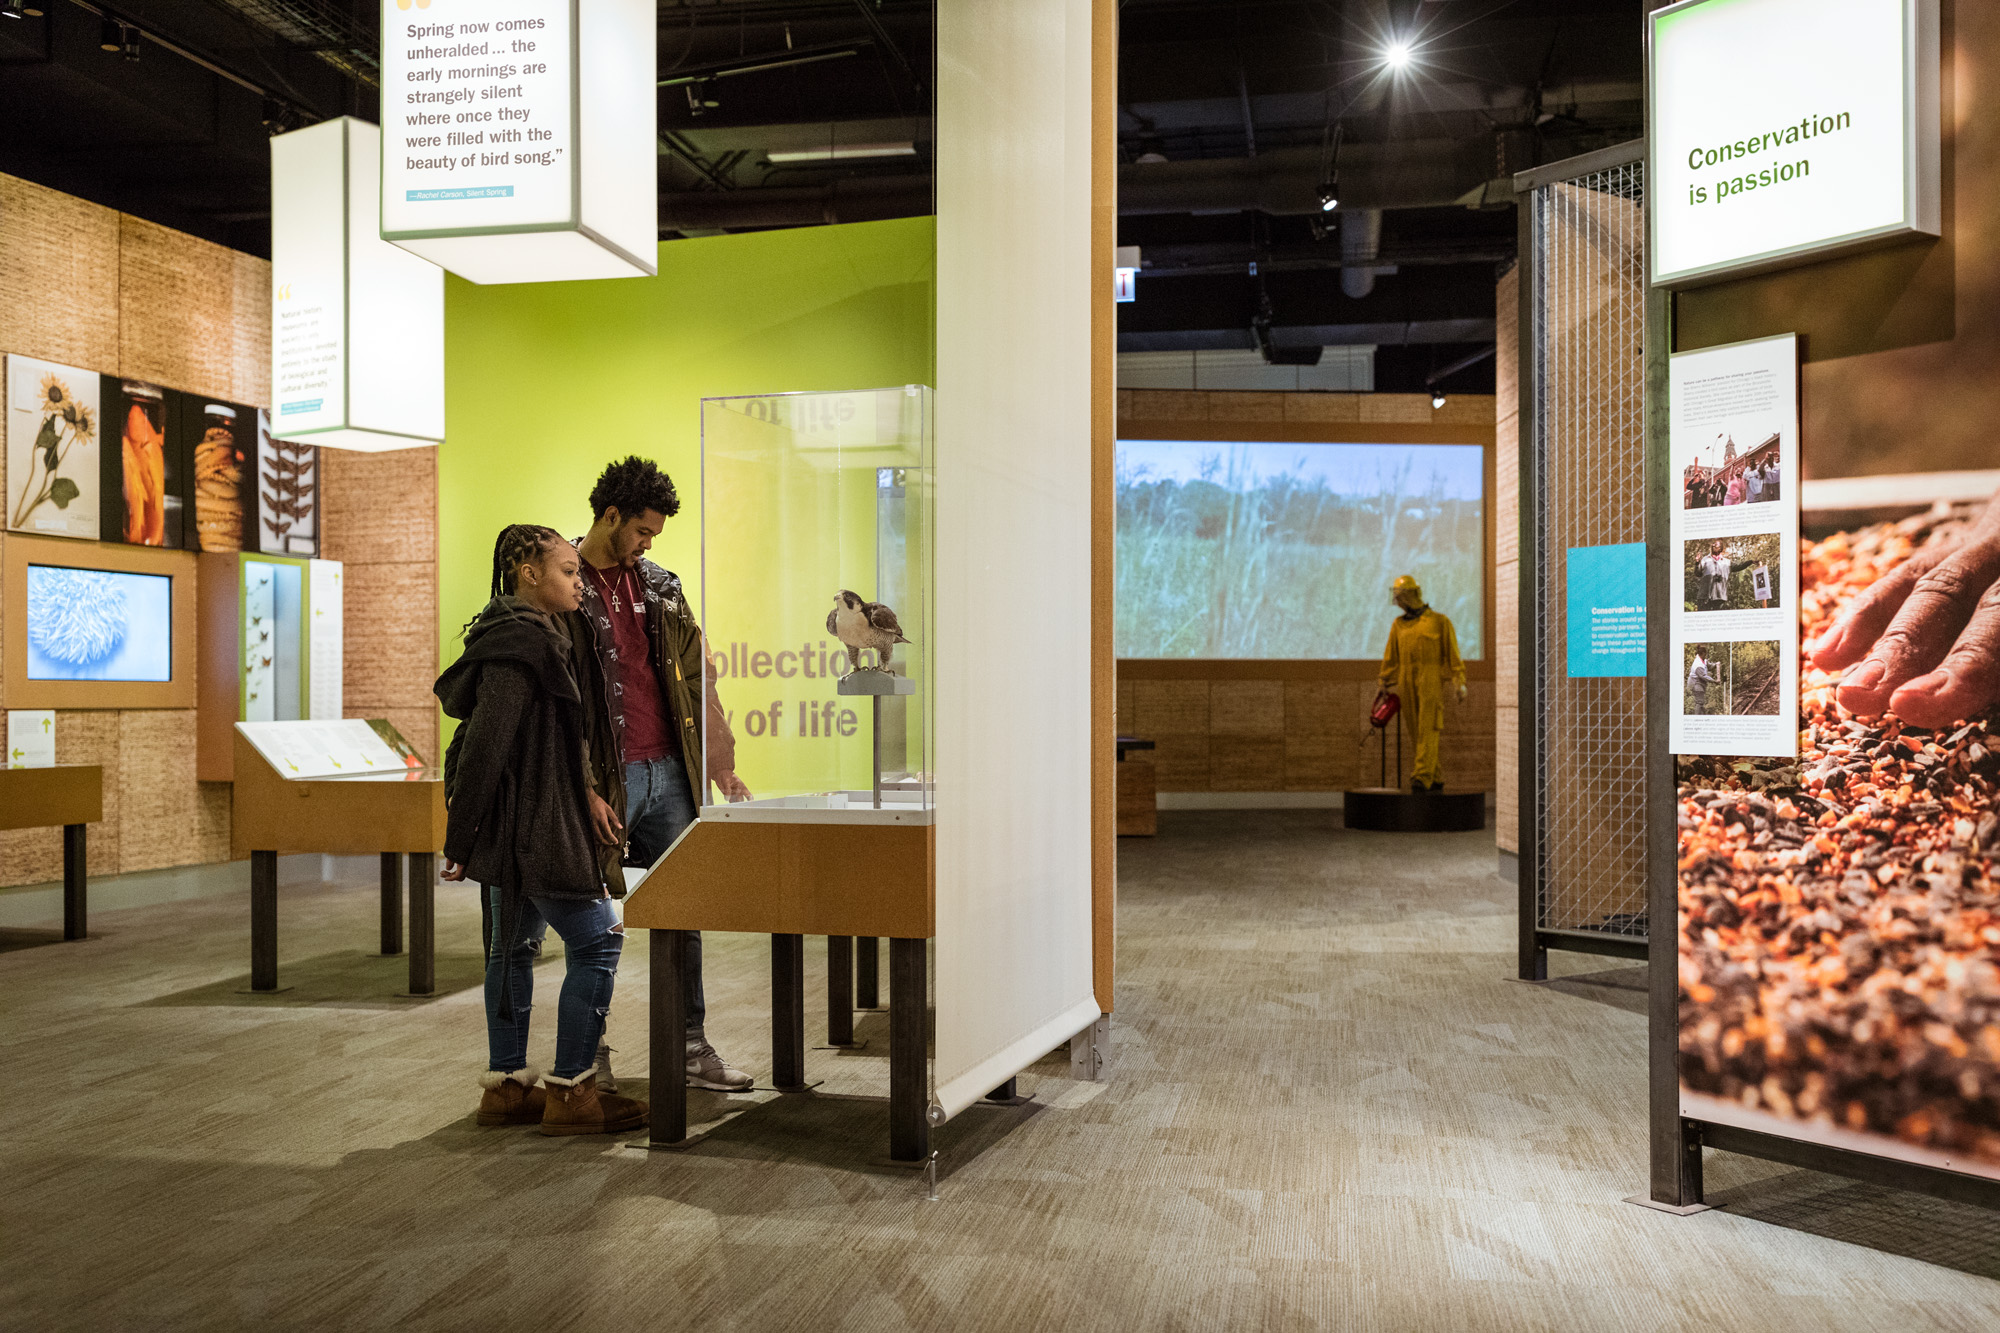 Two people stand in the Restoring Earth exhibition, looking at a peregrine falcon specimen.